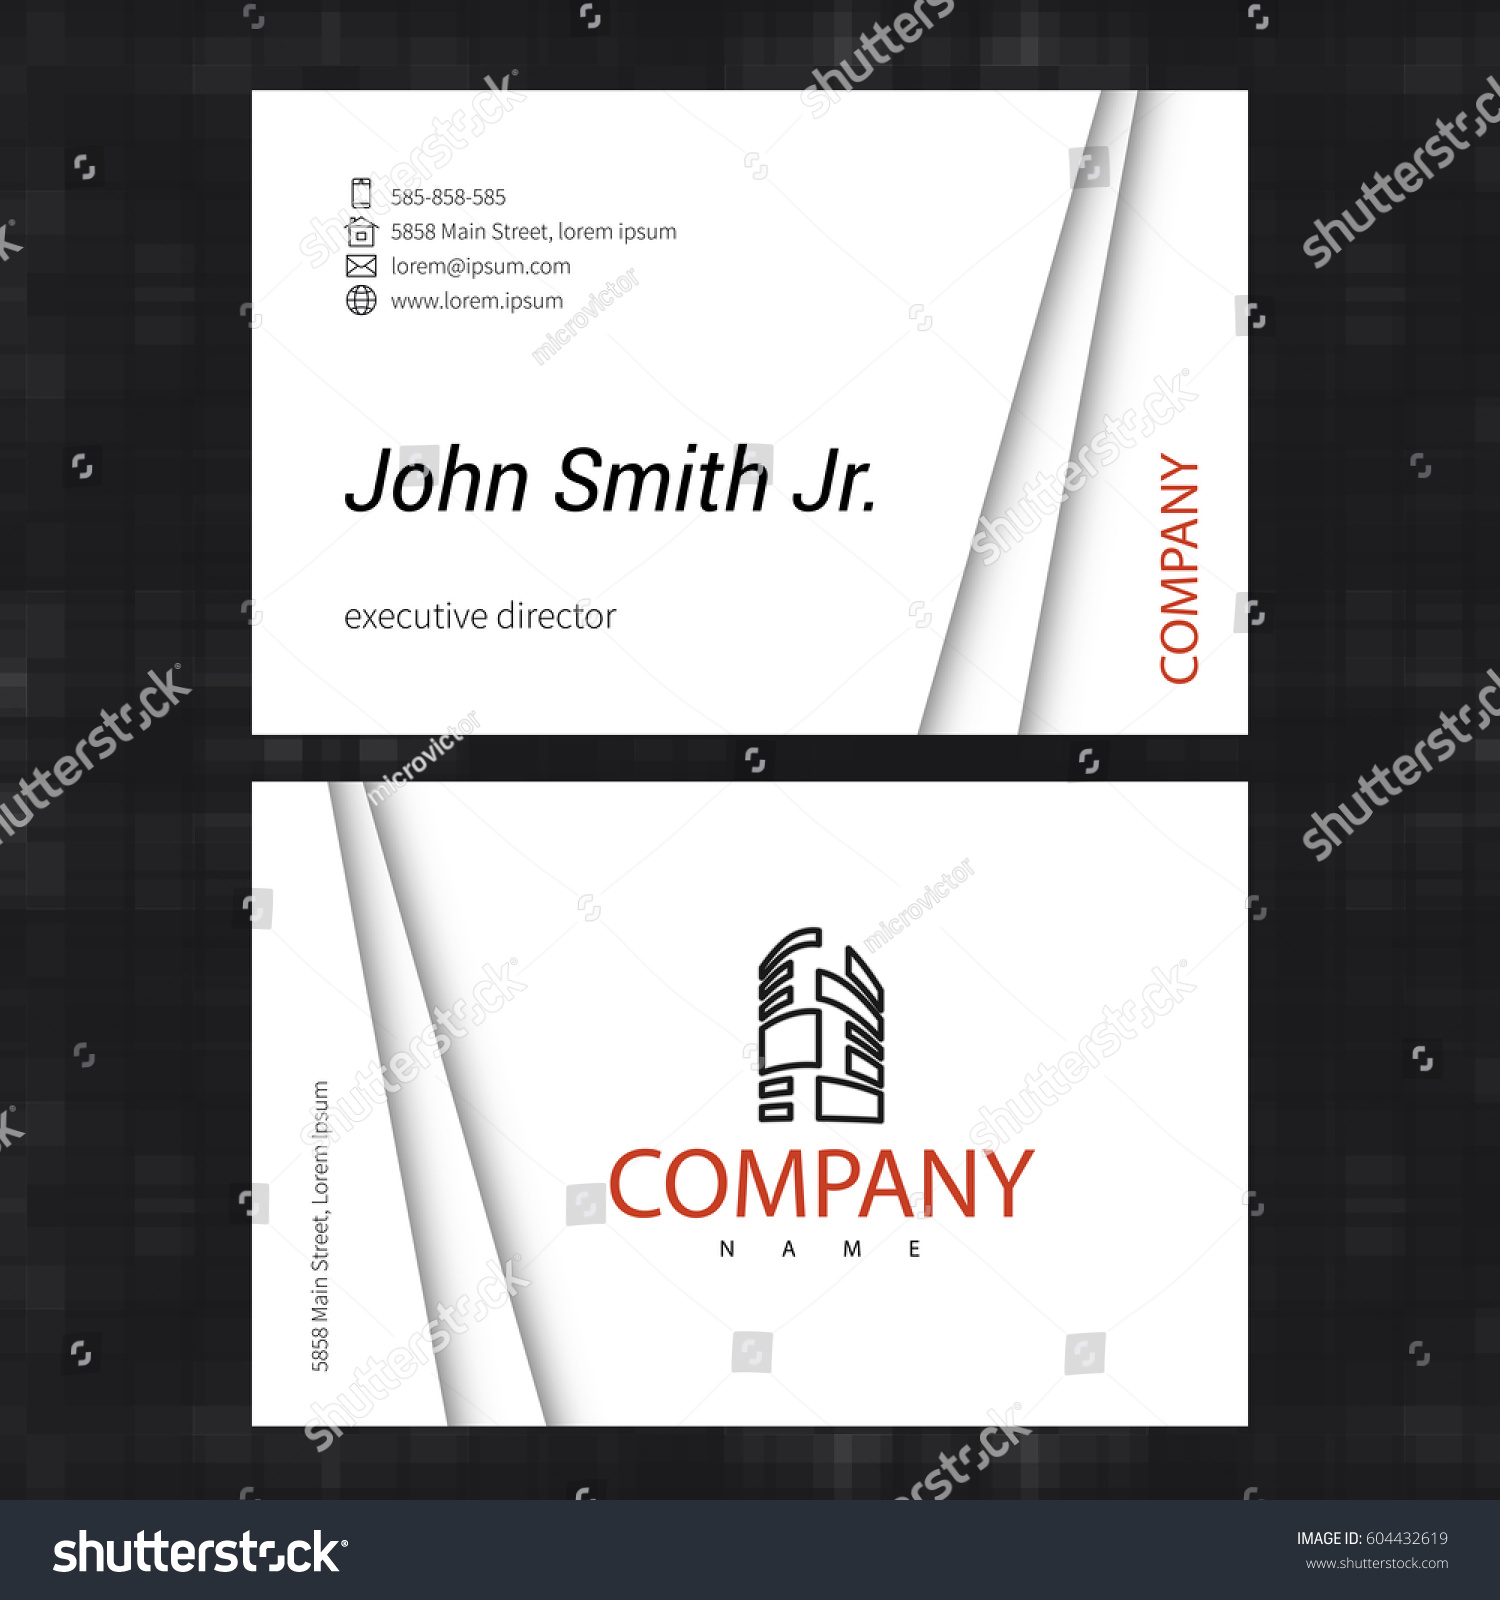 Simple Light Business Card Template Standard Stock Vector 604432619 ...